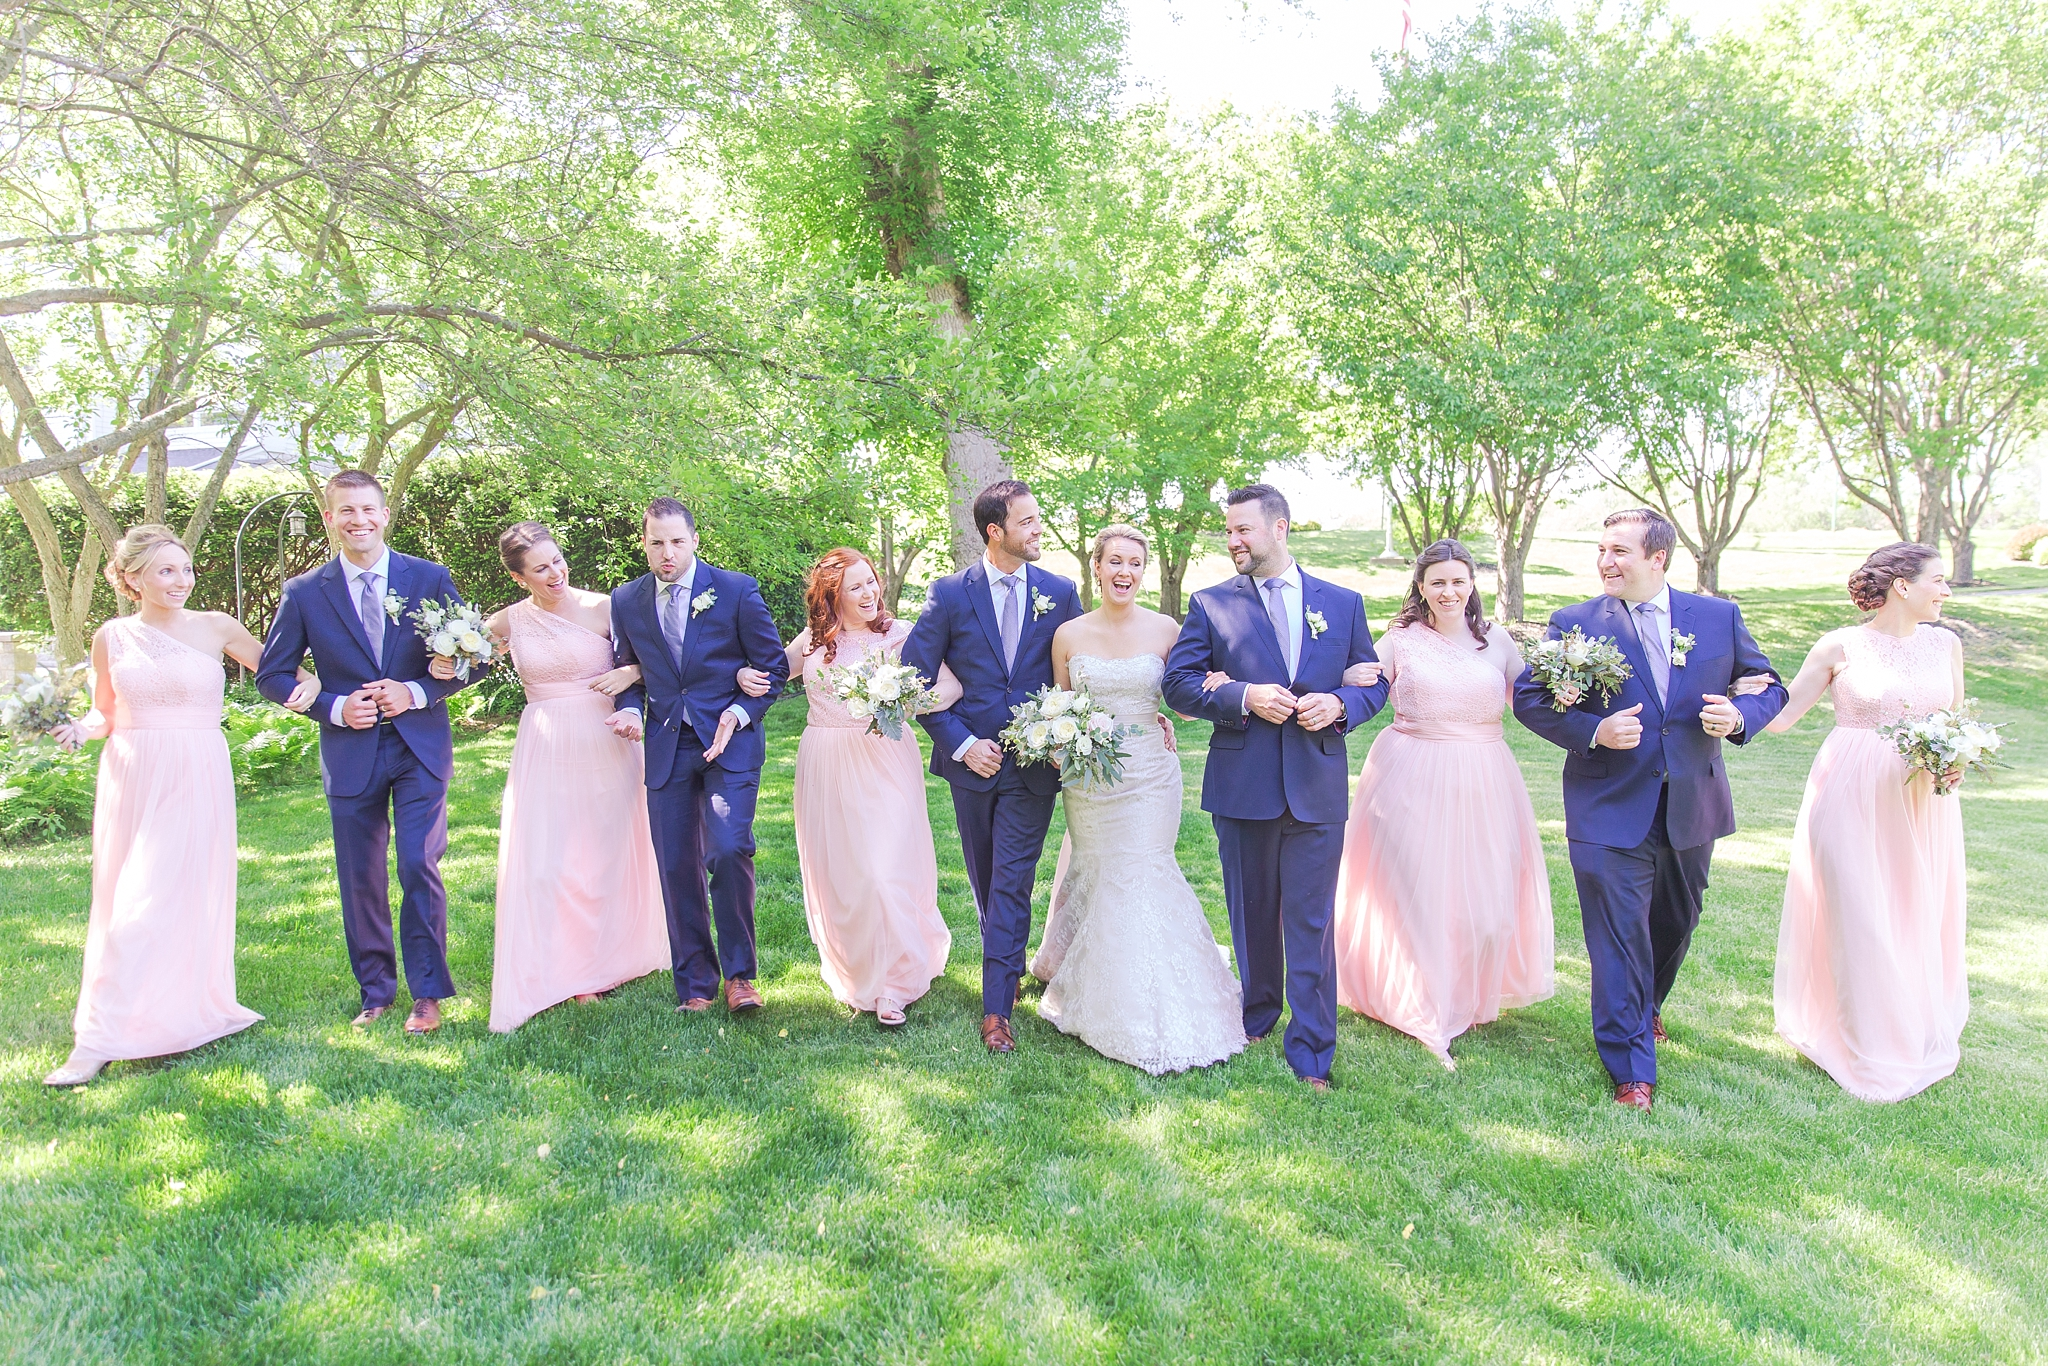 fun-candid-laid-back-wedding-photos-at-wellers-carriage-house-in-saline-michigan-and-at-the-eagle-crest-golf-resort-by-courtney-carolyn-photography_0025.jpg